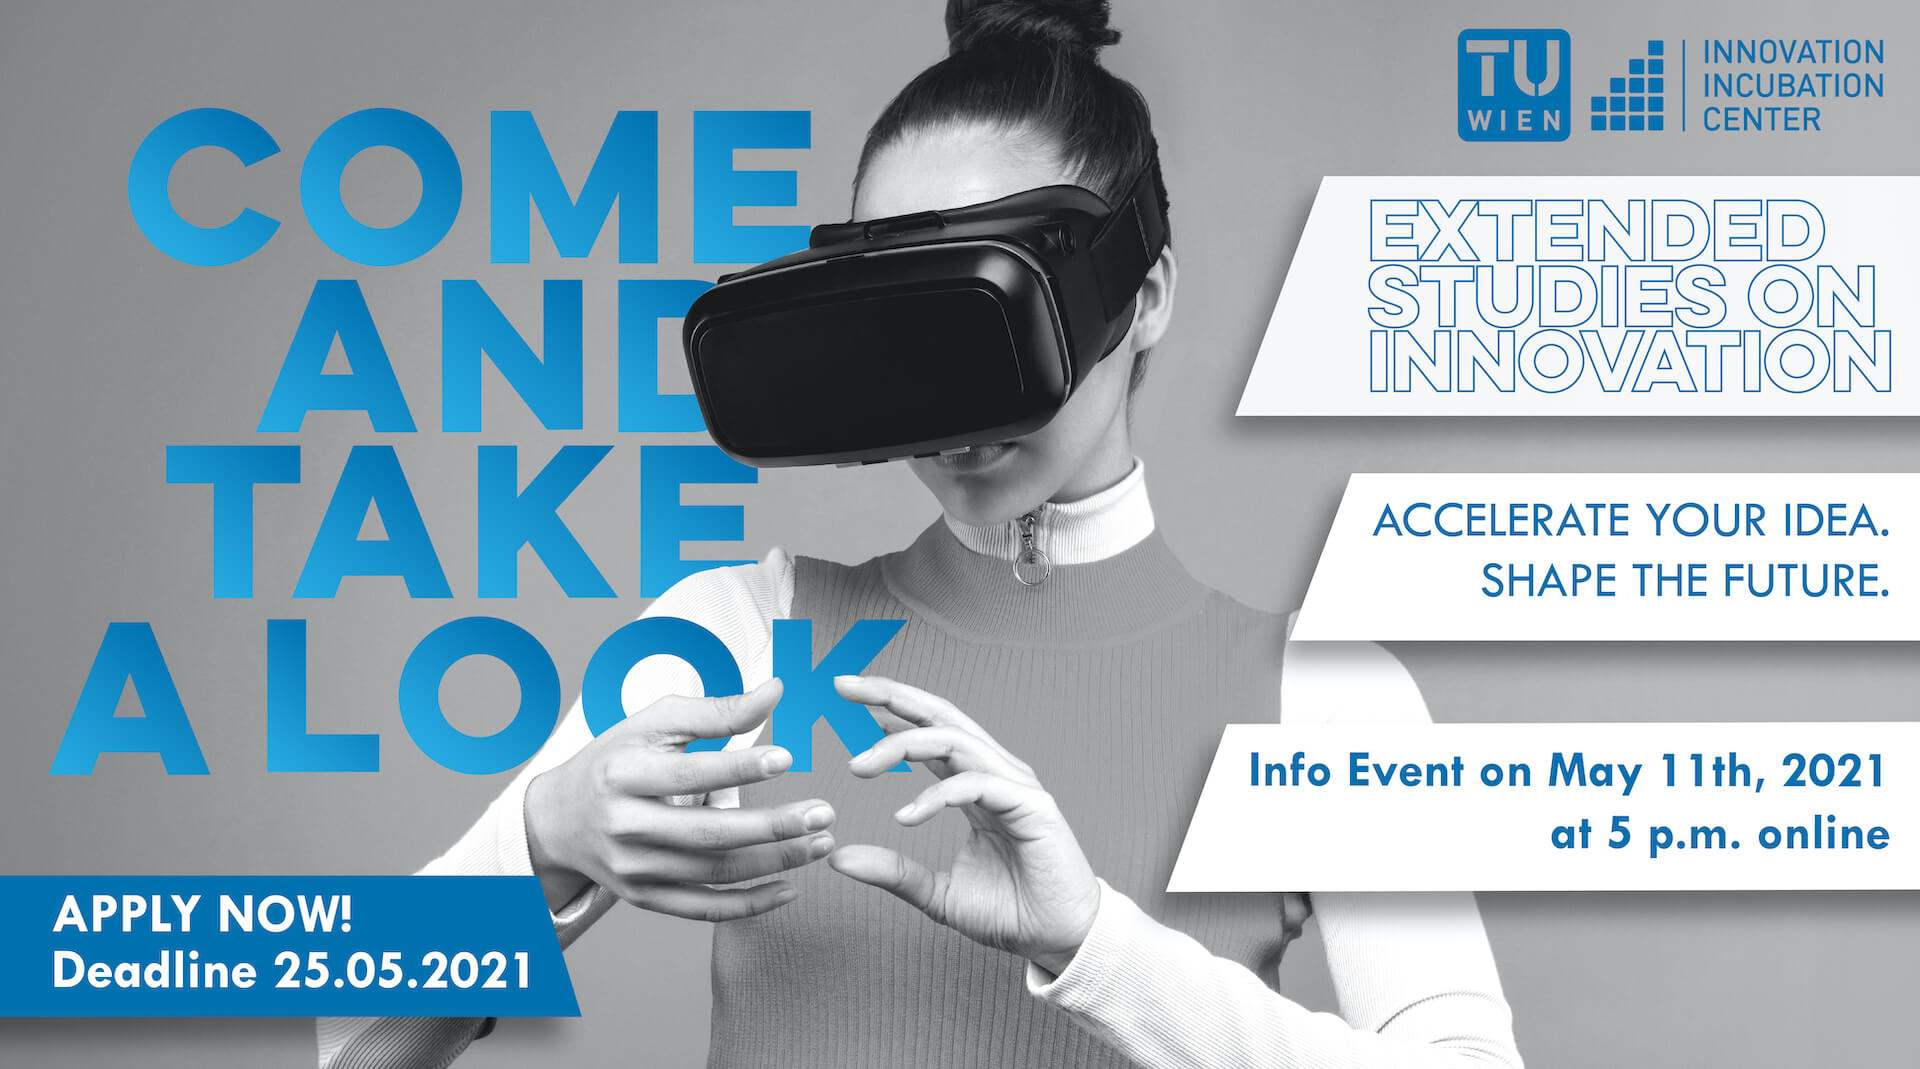 Info Event of the Extended Studies on Innovation